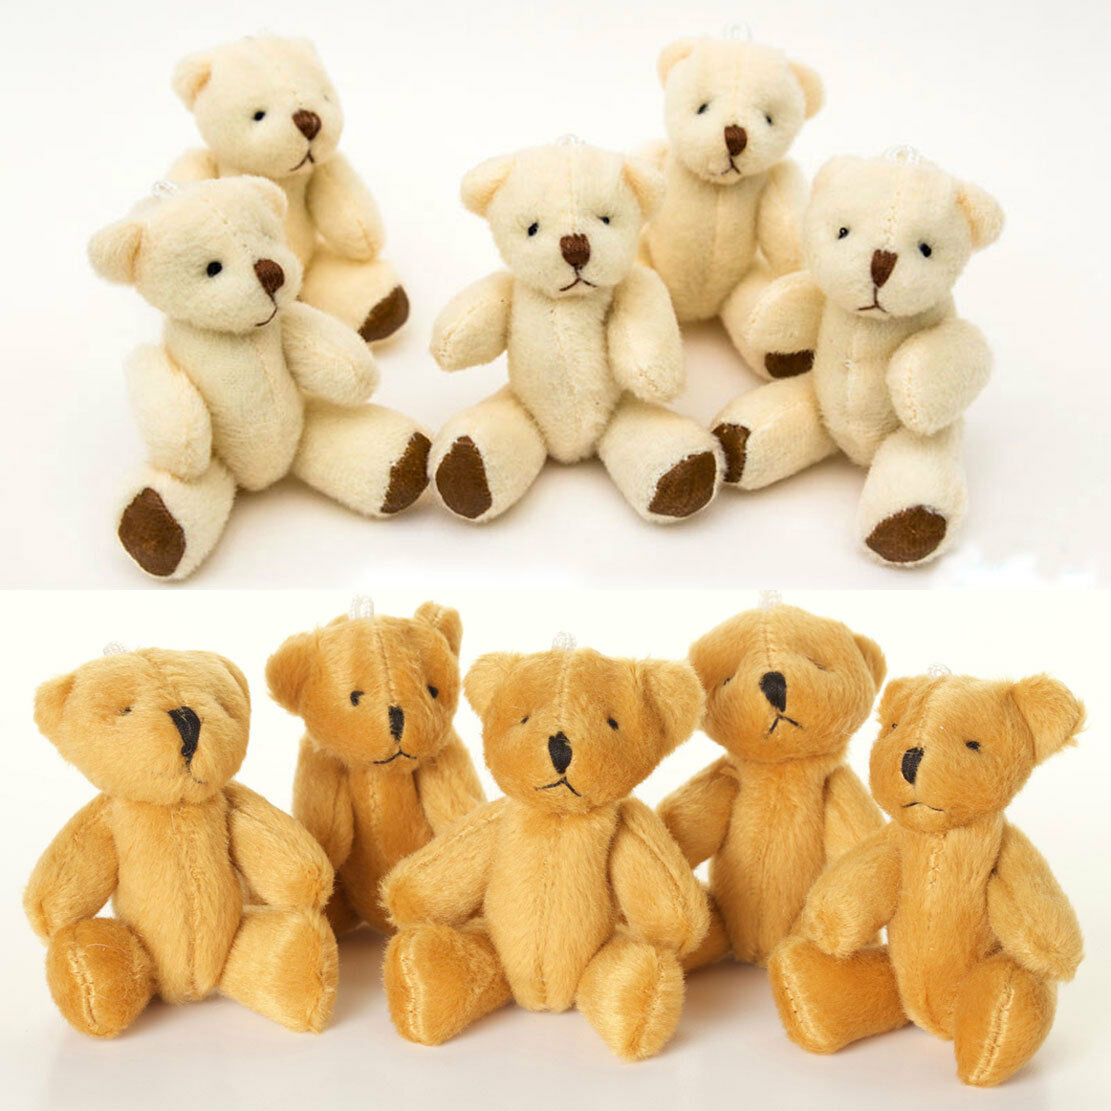 NEW - braun And Weiß Teddy Bears - Small Cute Soft Cuddly  - Gift Present